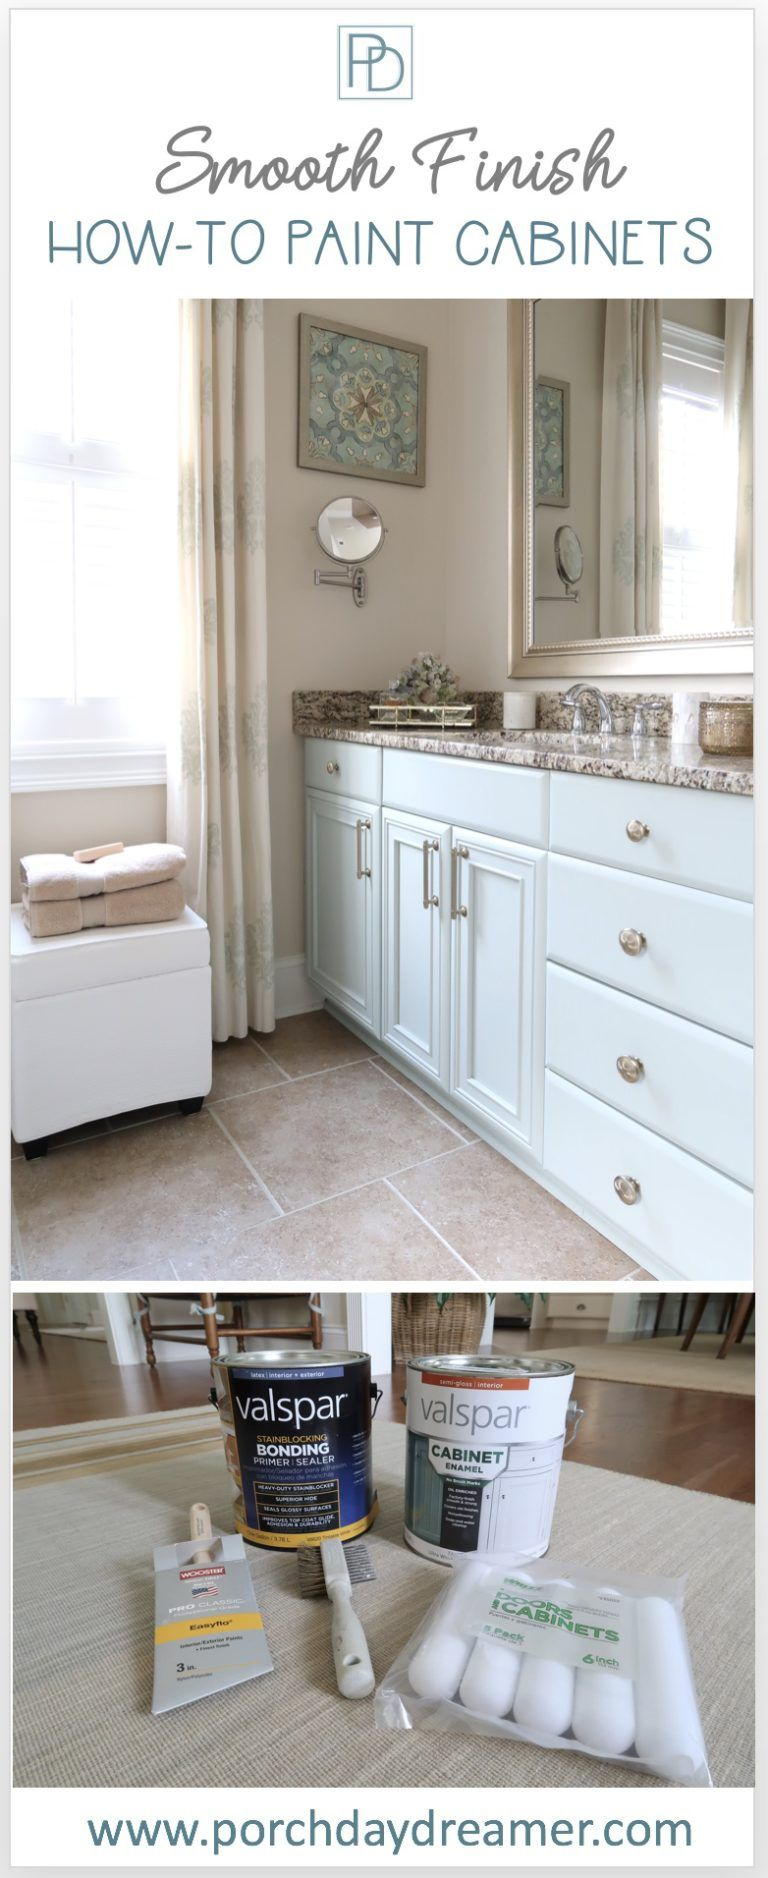 How To Paint Cabinets And Get A Smooth Finish With Images Painting Bathroom Cabinets Painting Cabinets Bathroom Cabinets Diy